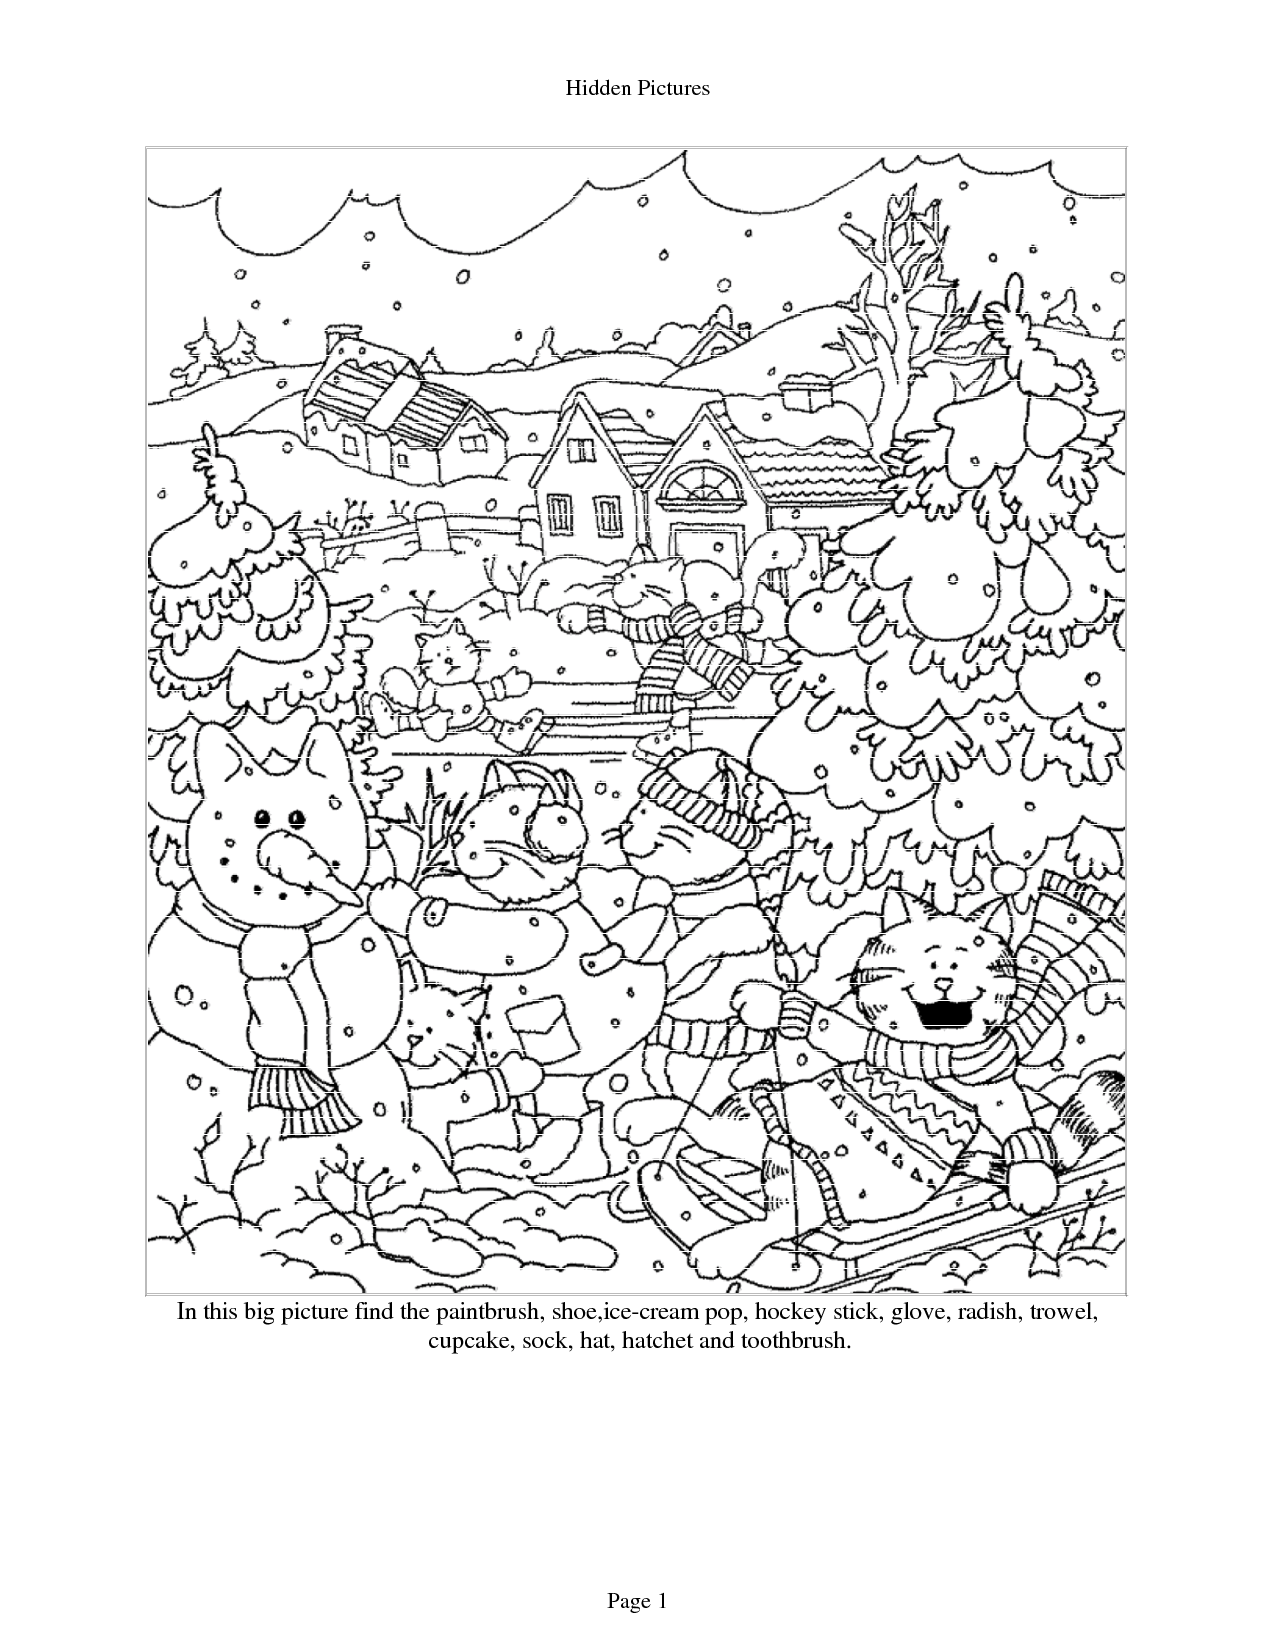 Puzzle Worksheet Middle School